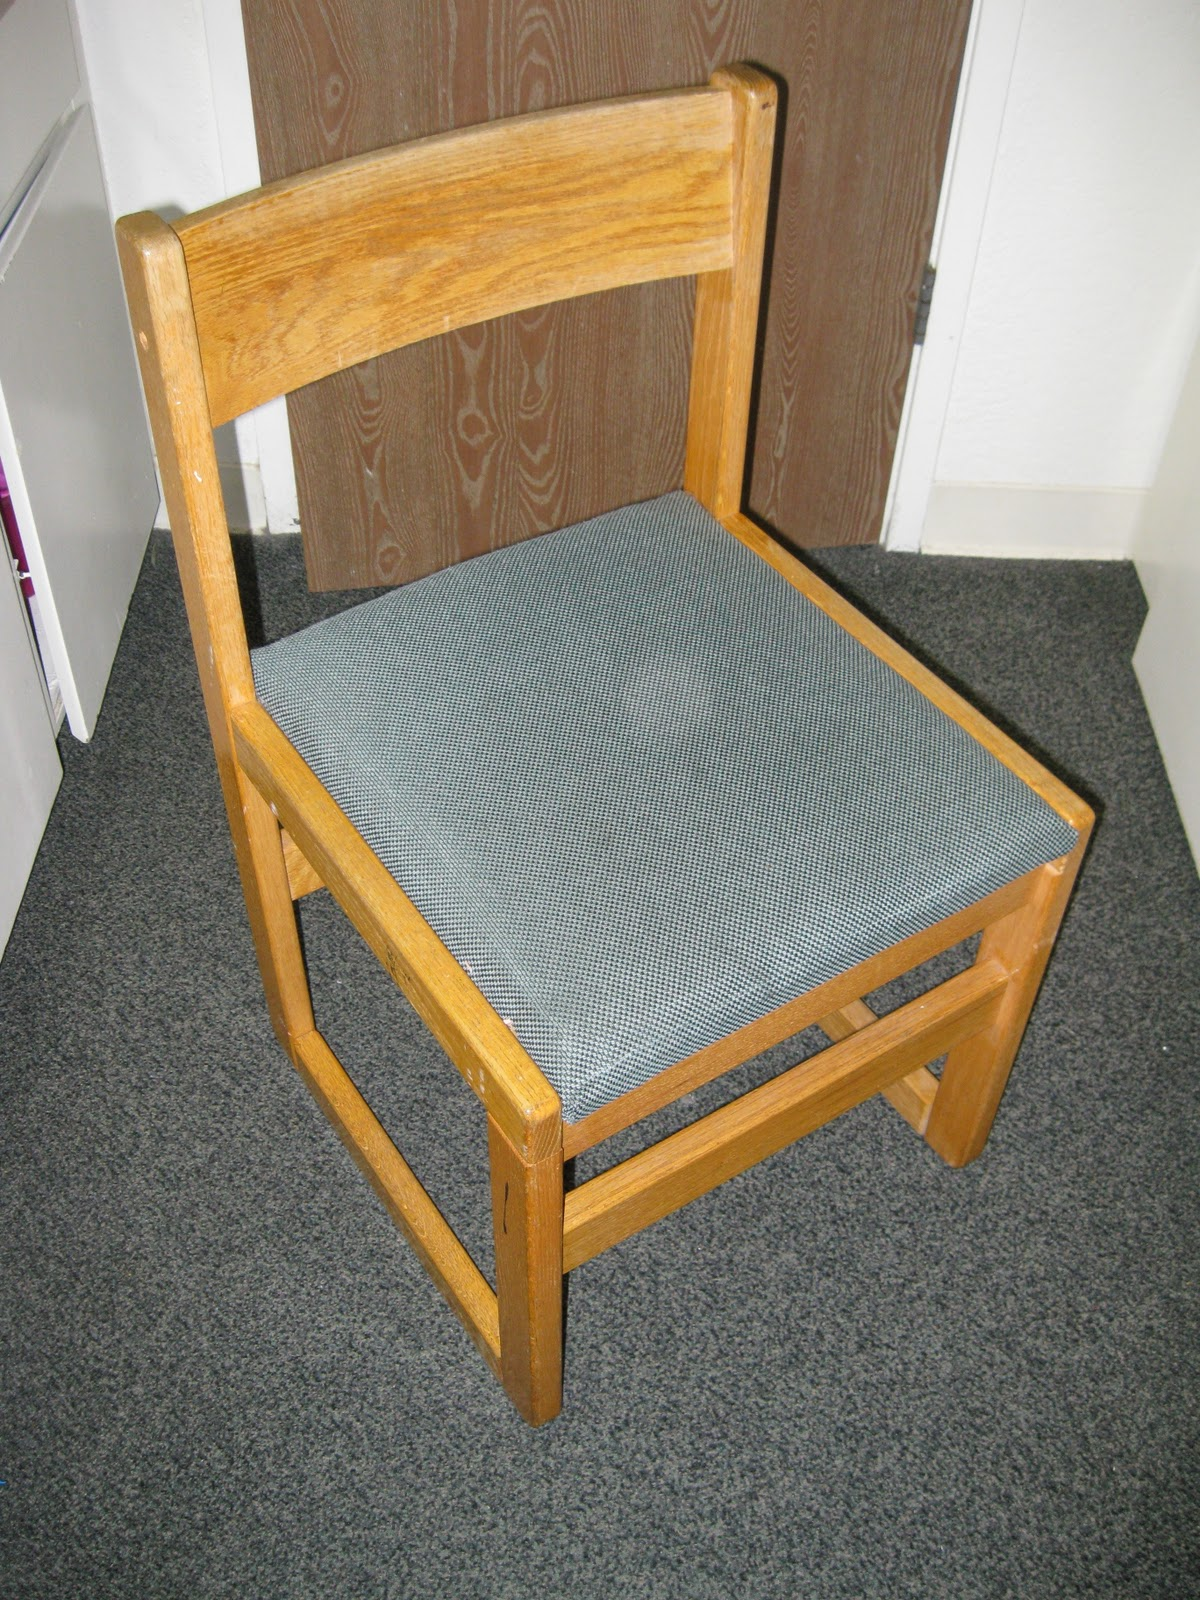 Chairs For Dorm Rooms Creative By Design 5 Areas Of Ergonomics Dorm Room Desk